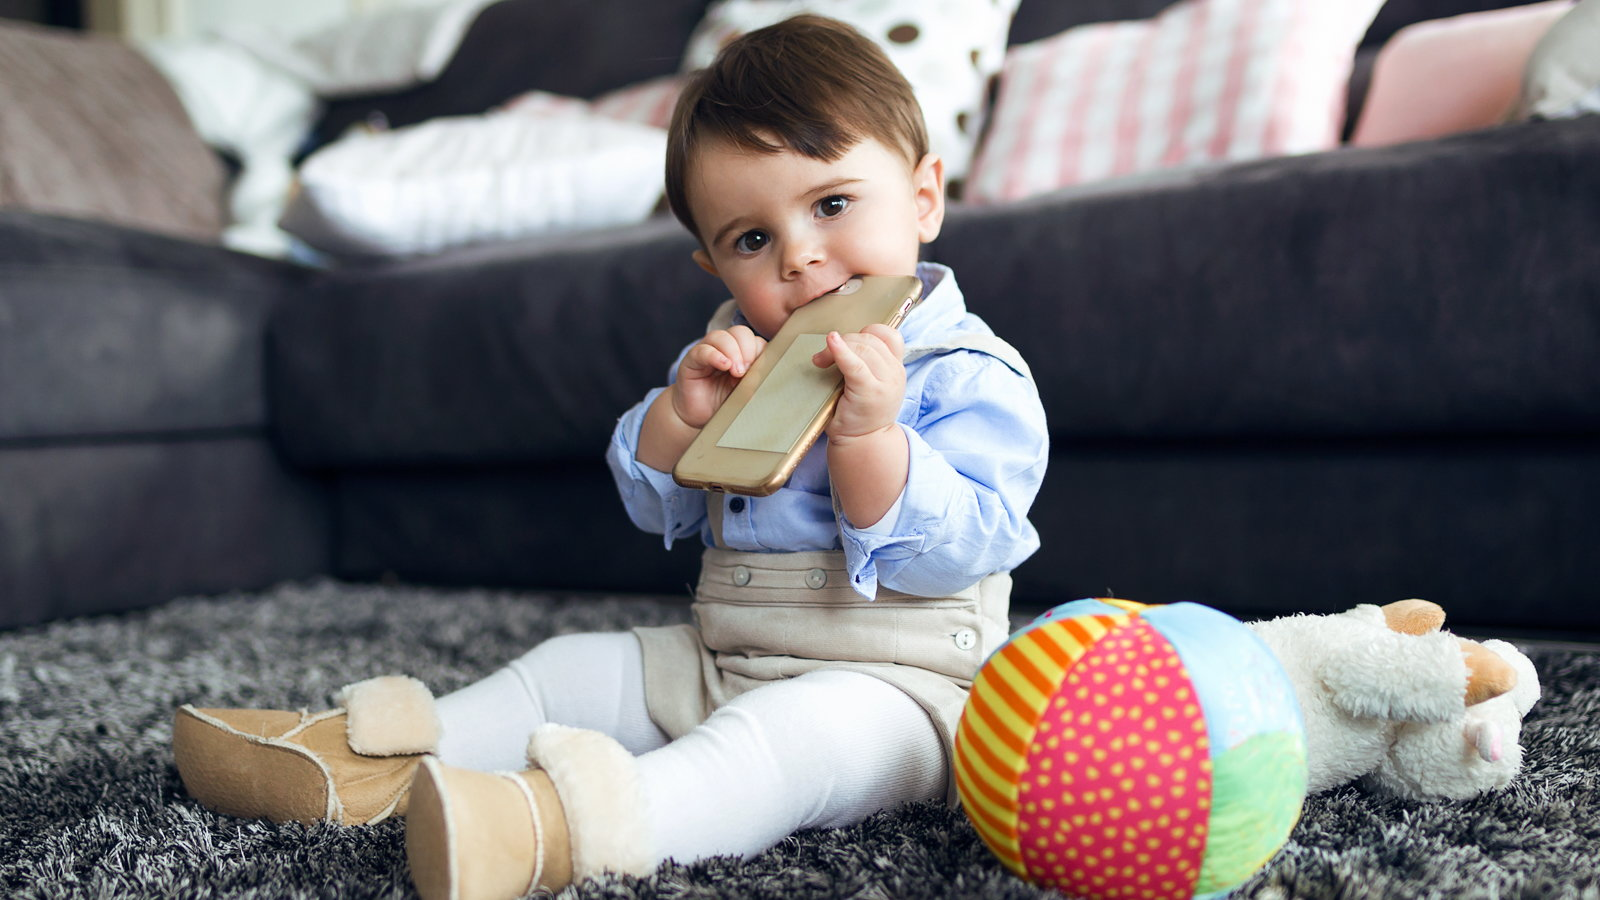 toddler chewing on cellphone